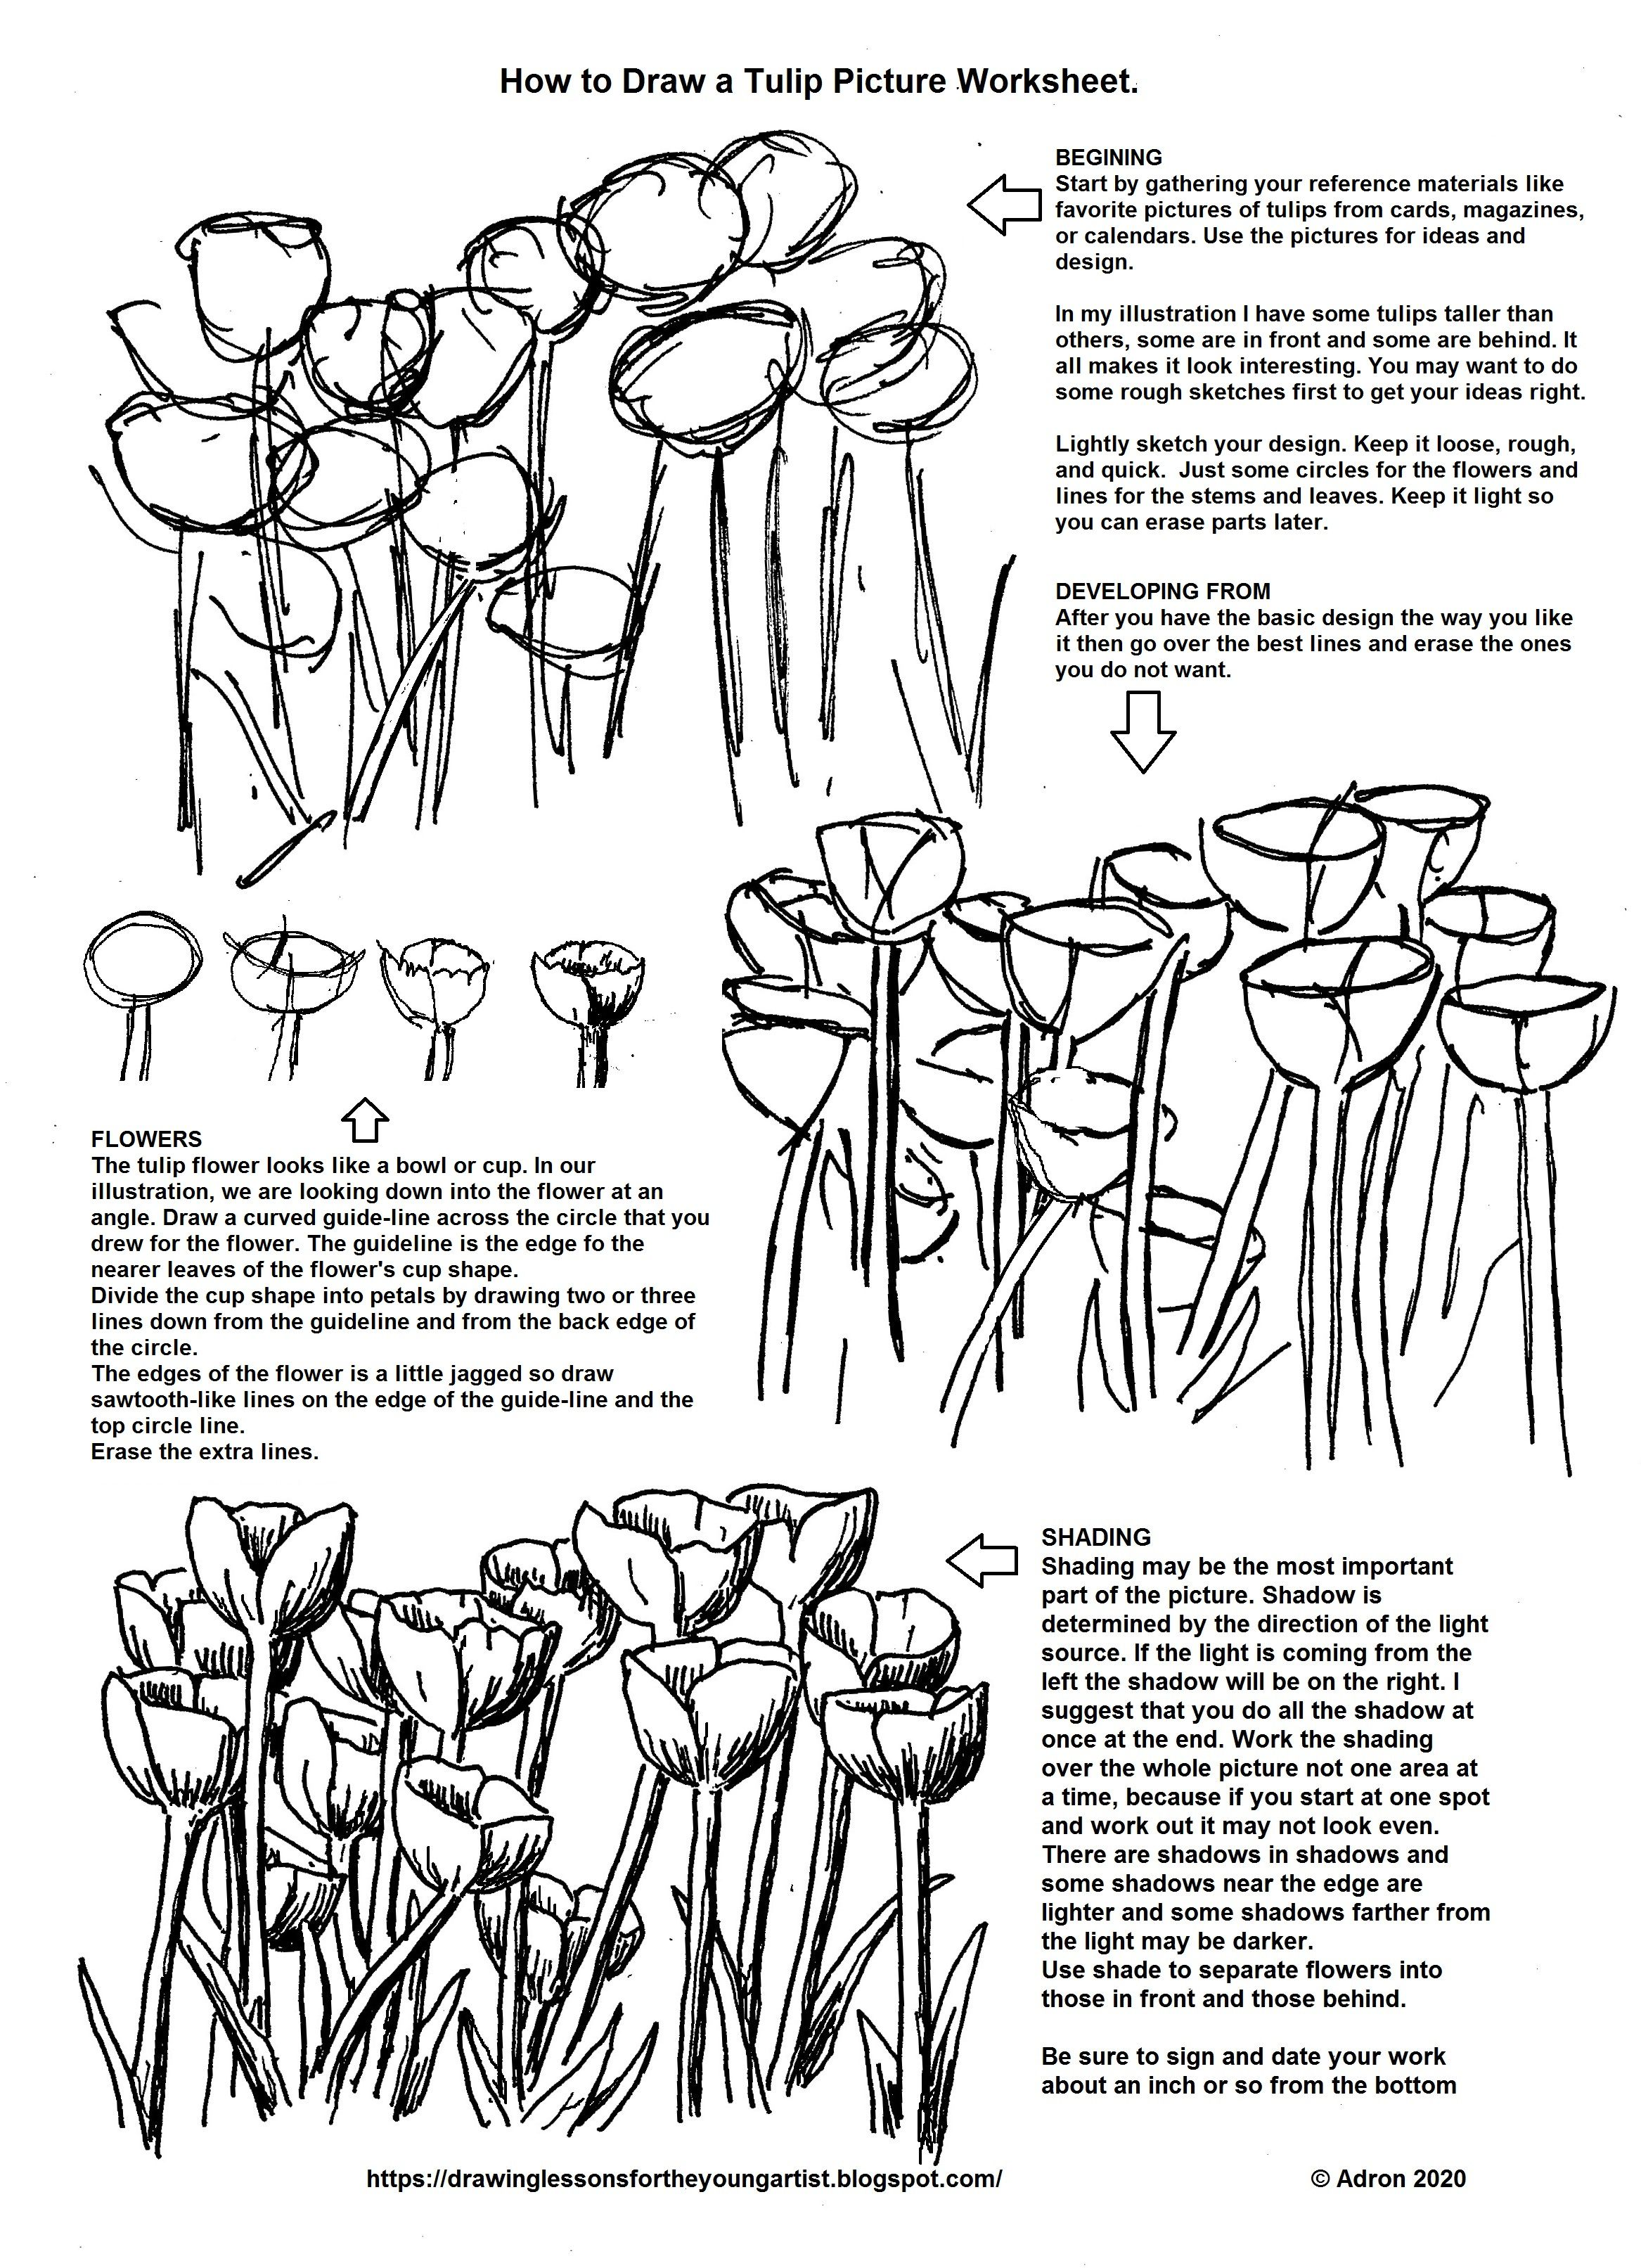 Tulips How To Draw Worksheet In